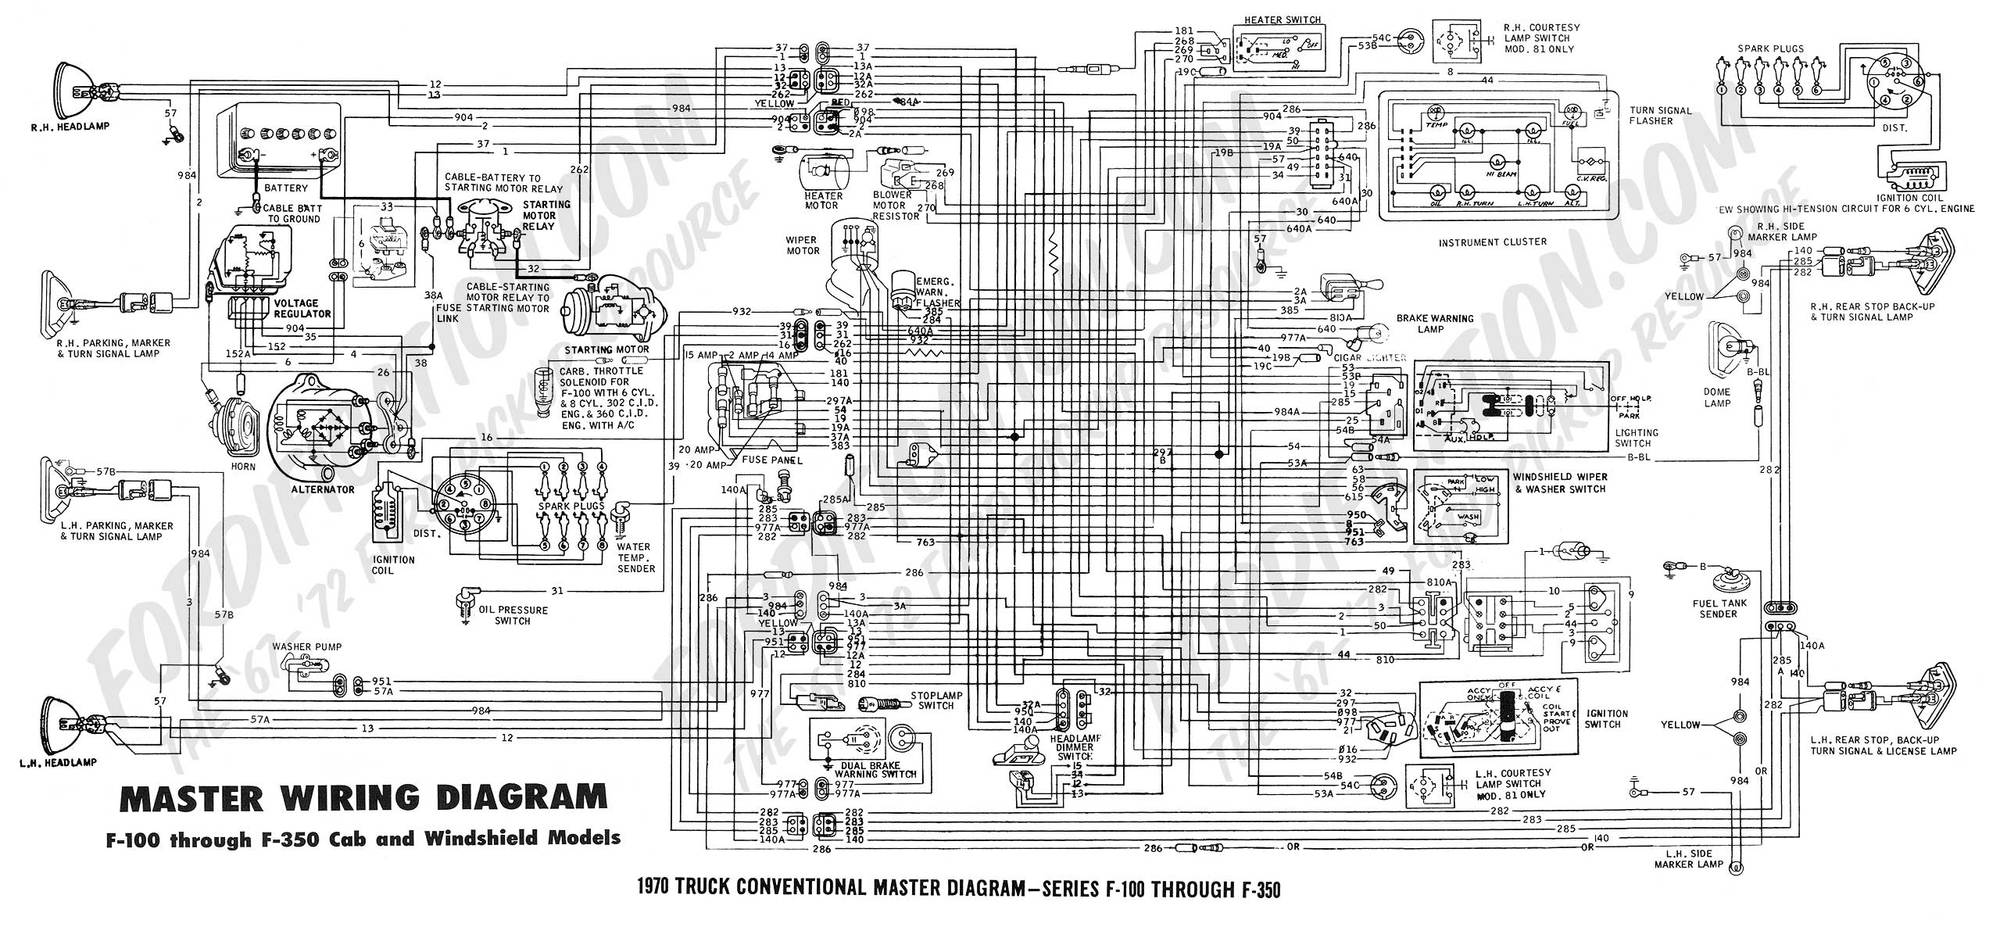 80 wiring_diagram_70_master_77b0650ff5823fc998e119c71f59ee29a8fbe89a reznor heater wiring schematic efcaviation com goodman furnace wiring diagram at mifinder.co